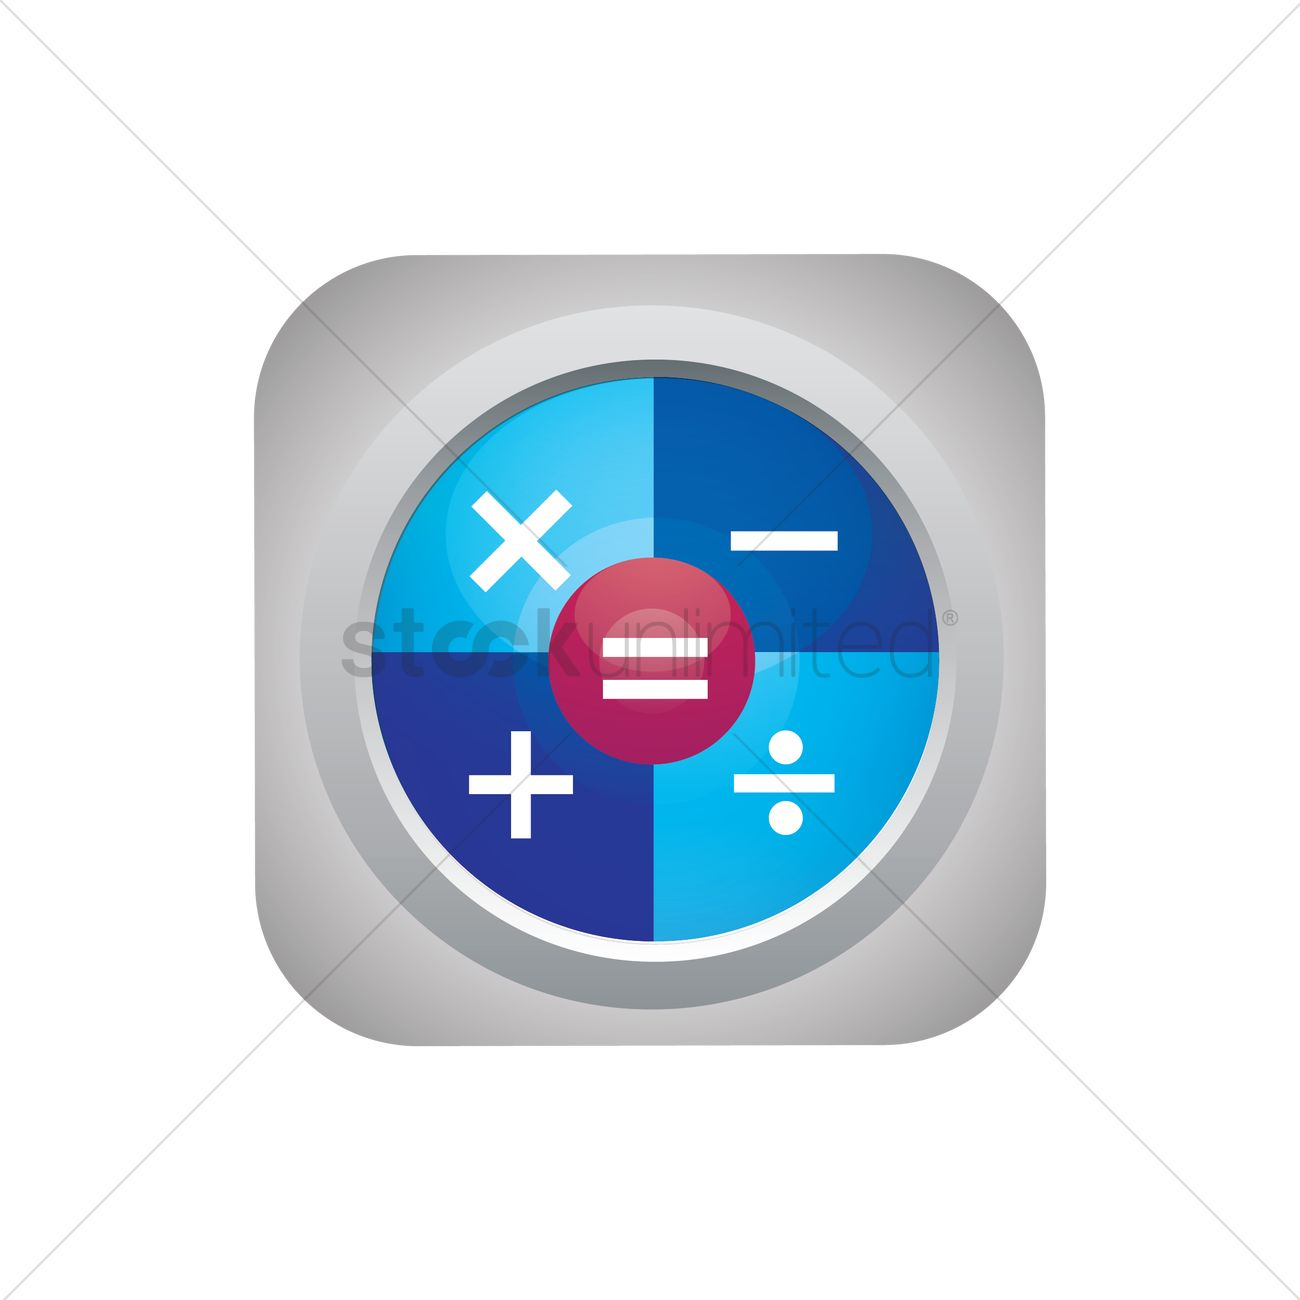 Calculator icon Vector Image - 1607518 | StockUnlimited